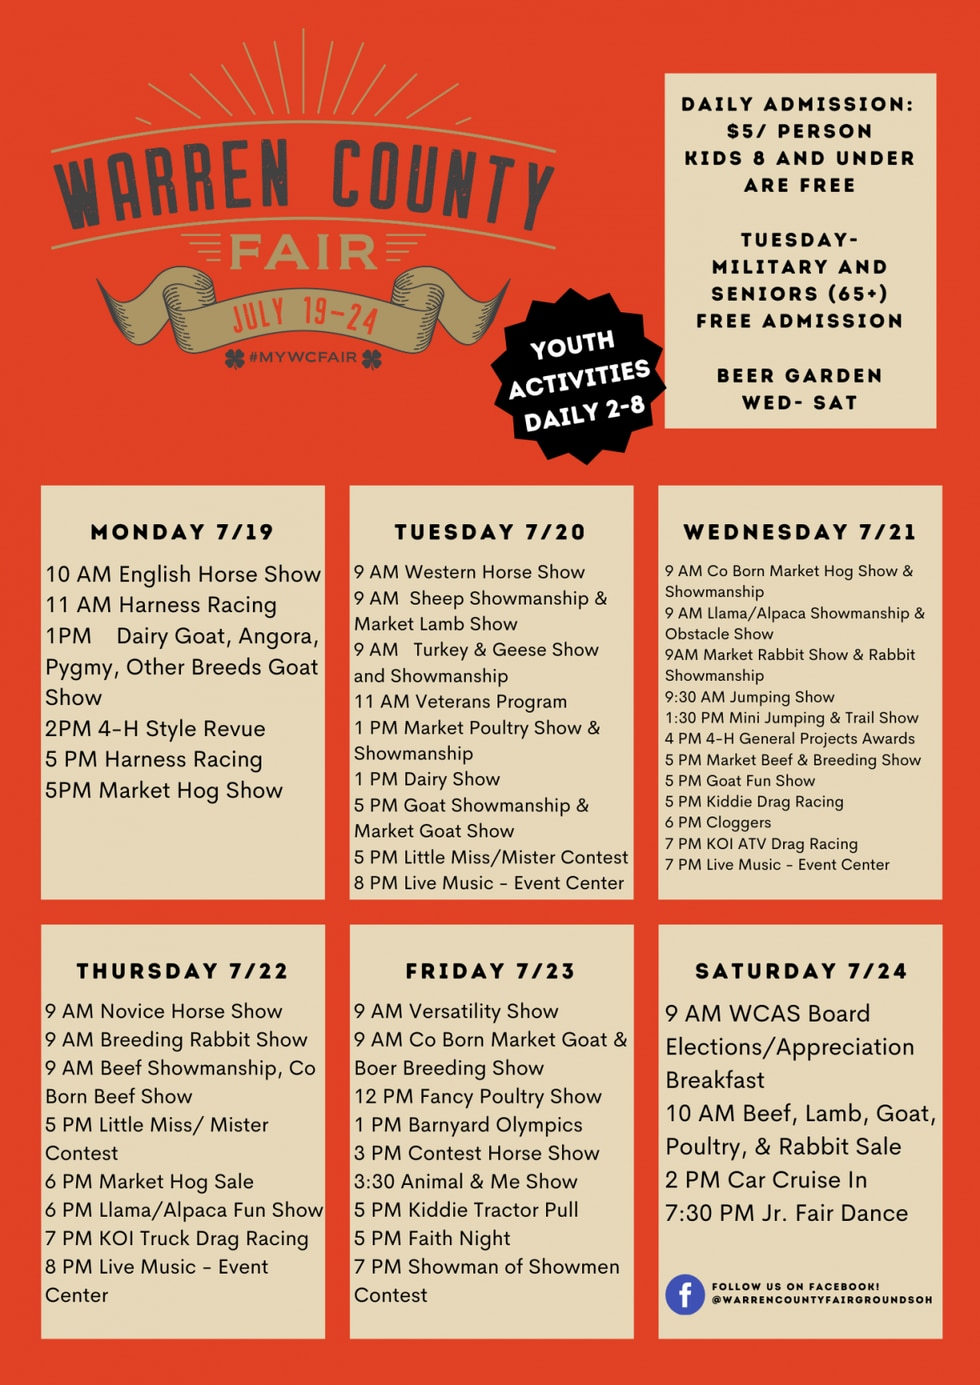 The fair starts Monday and will go through Saturday.